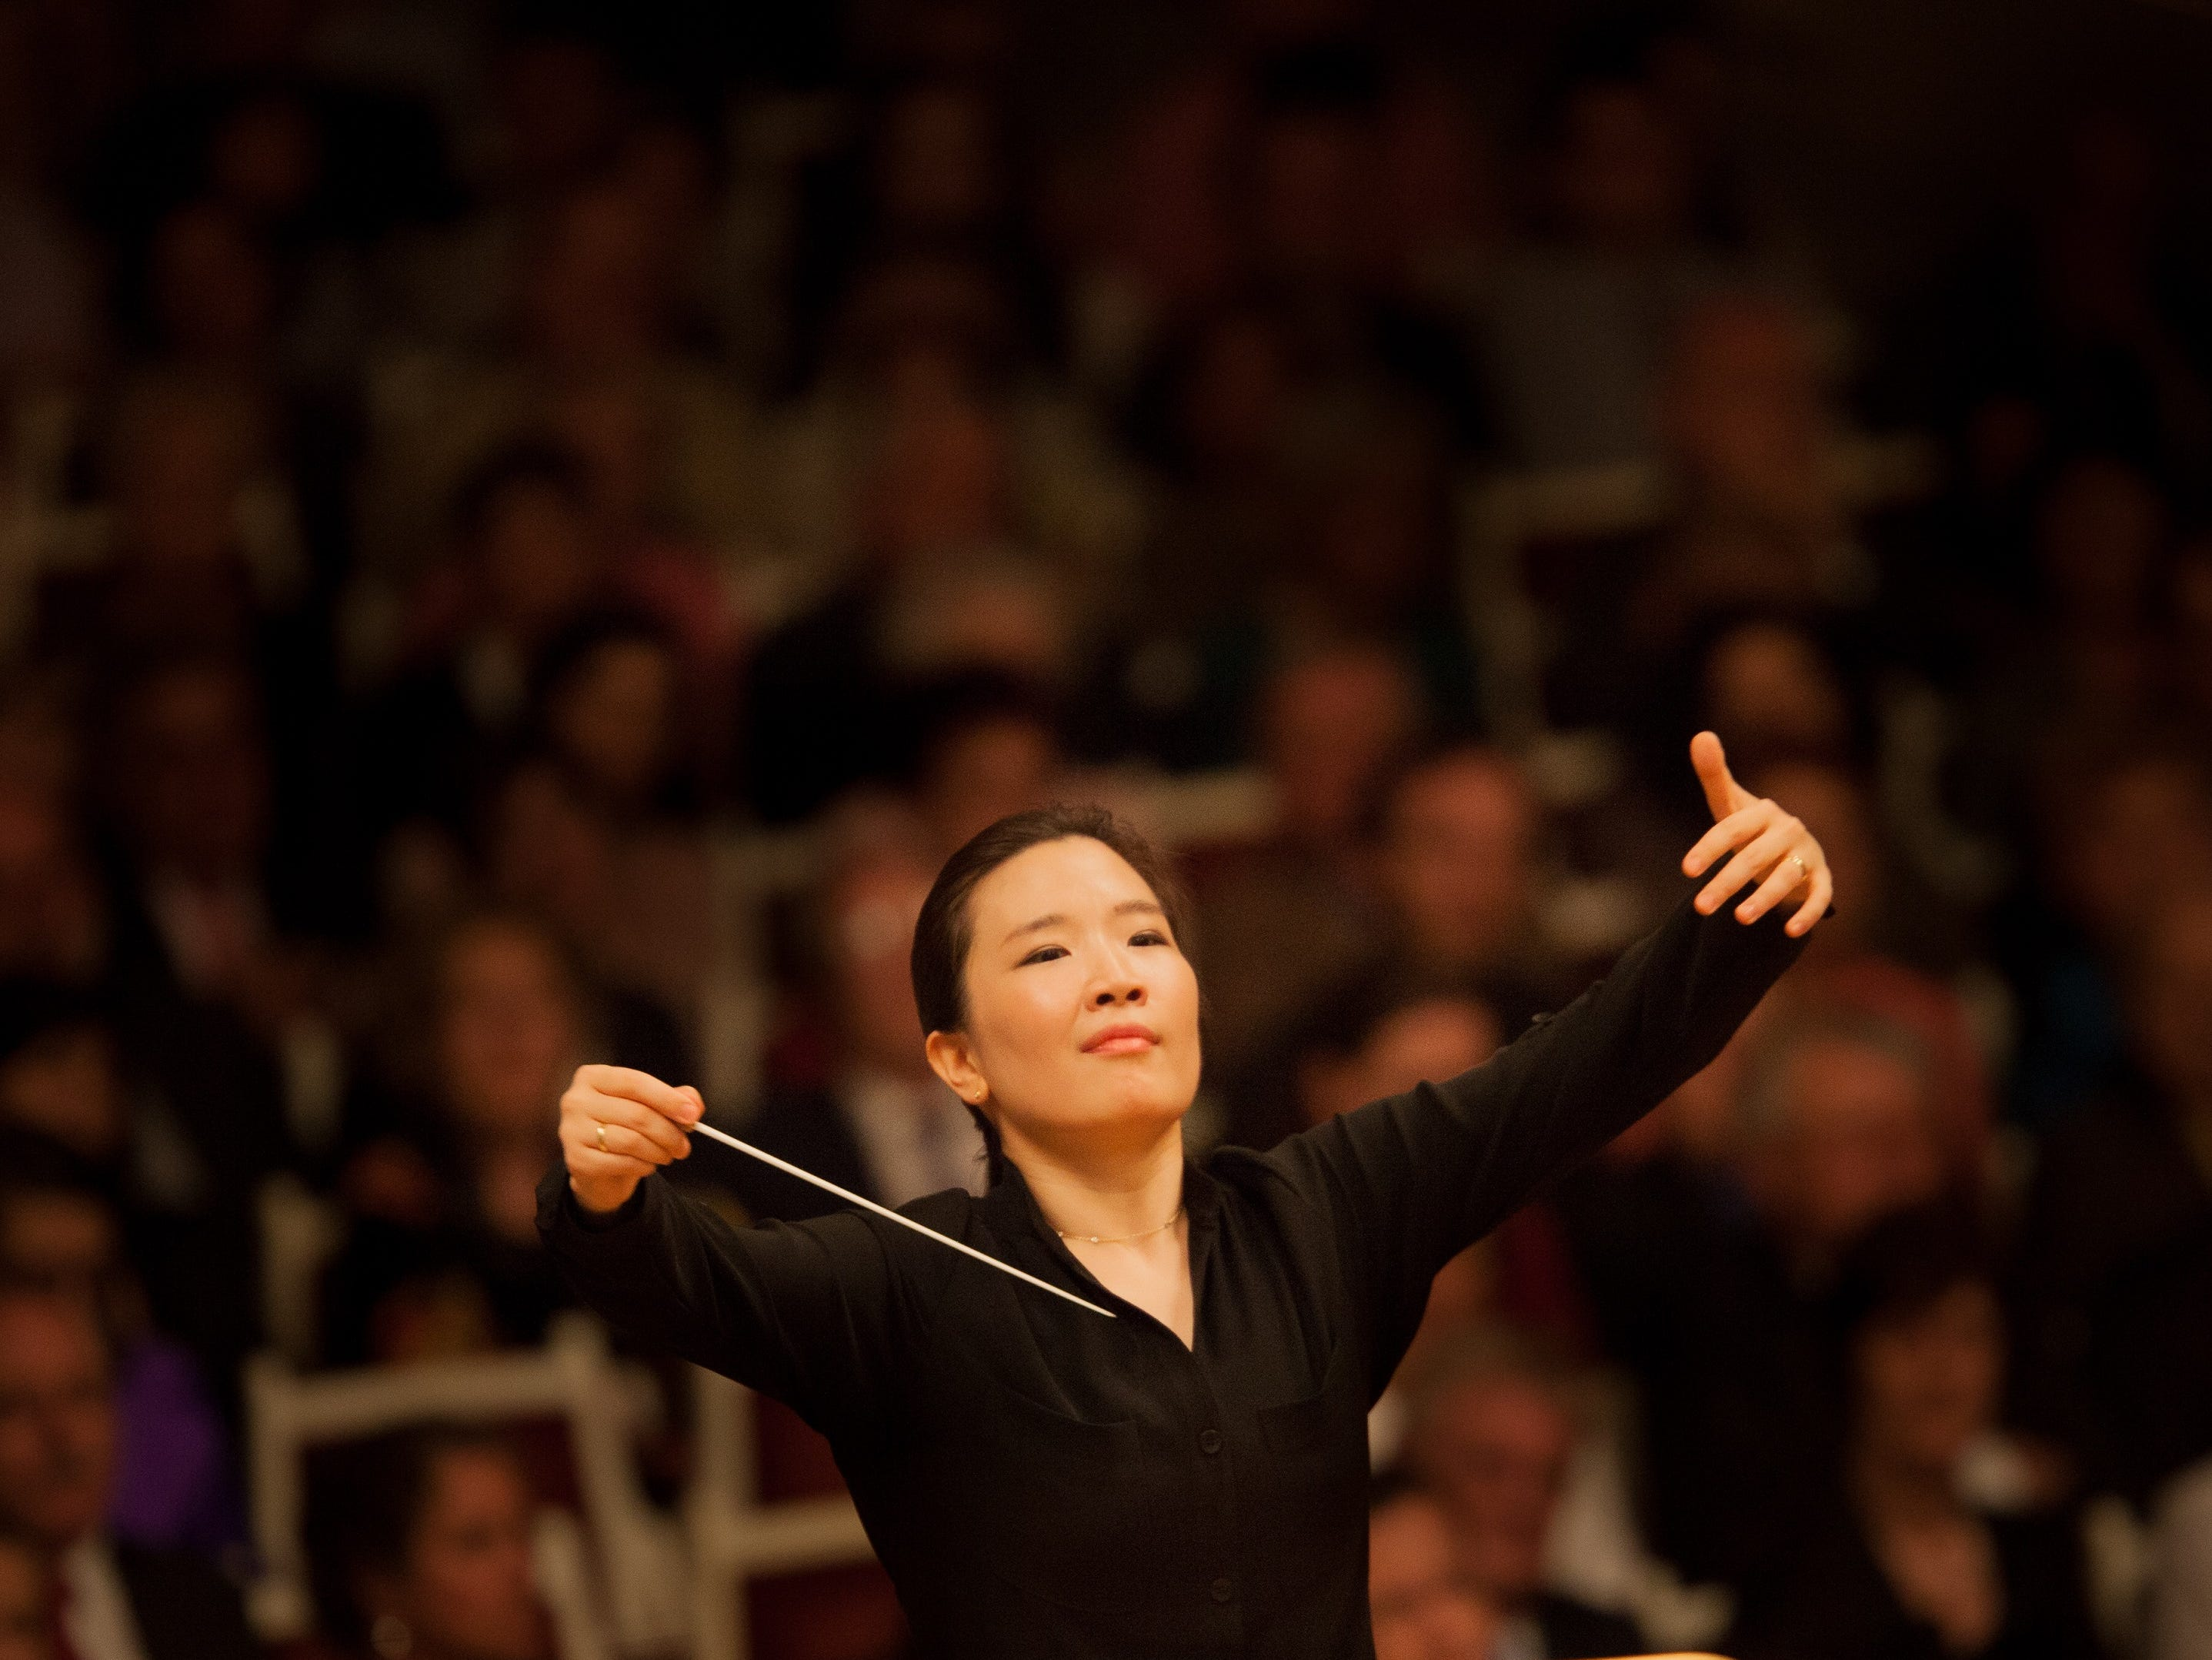 When conductor Eun-Sun Kim stepped in to replace James Levine at last spring's May Festival, she became the first woman to lead a festival concert in its 145-year history. She returns to lead the CSO Sept. 28-29.